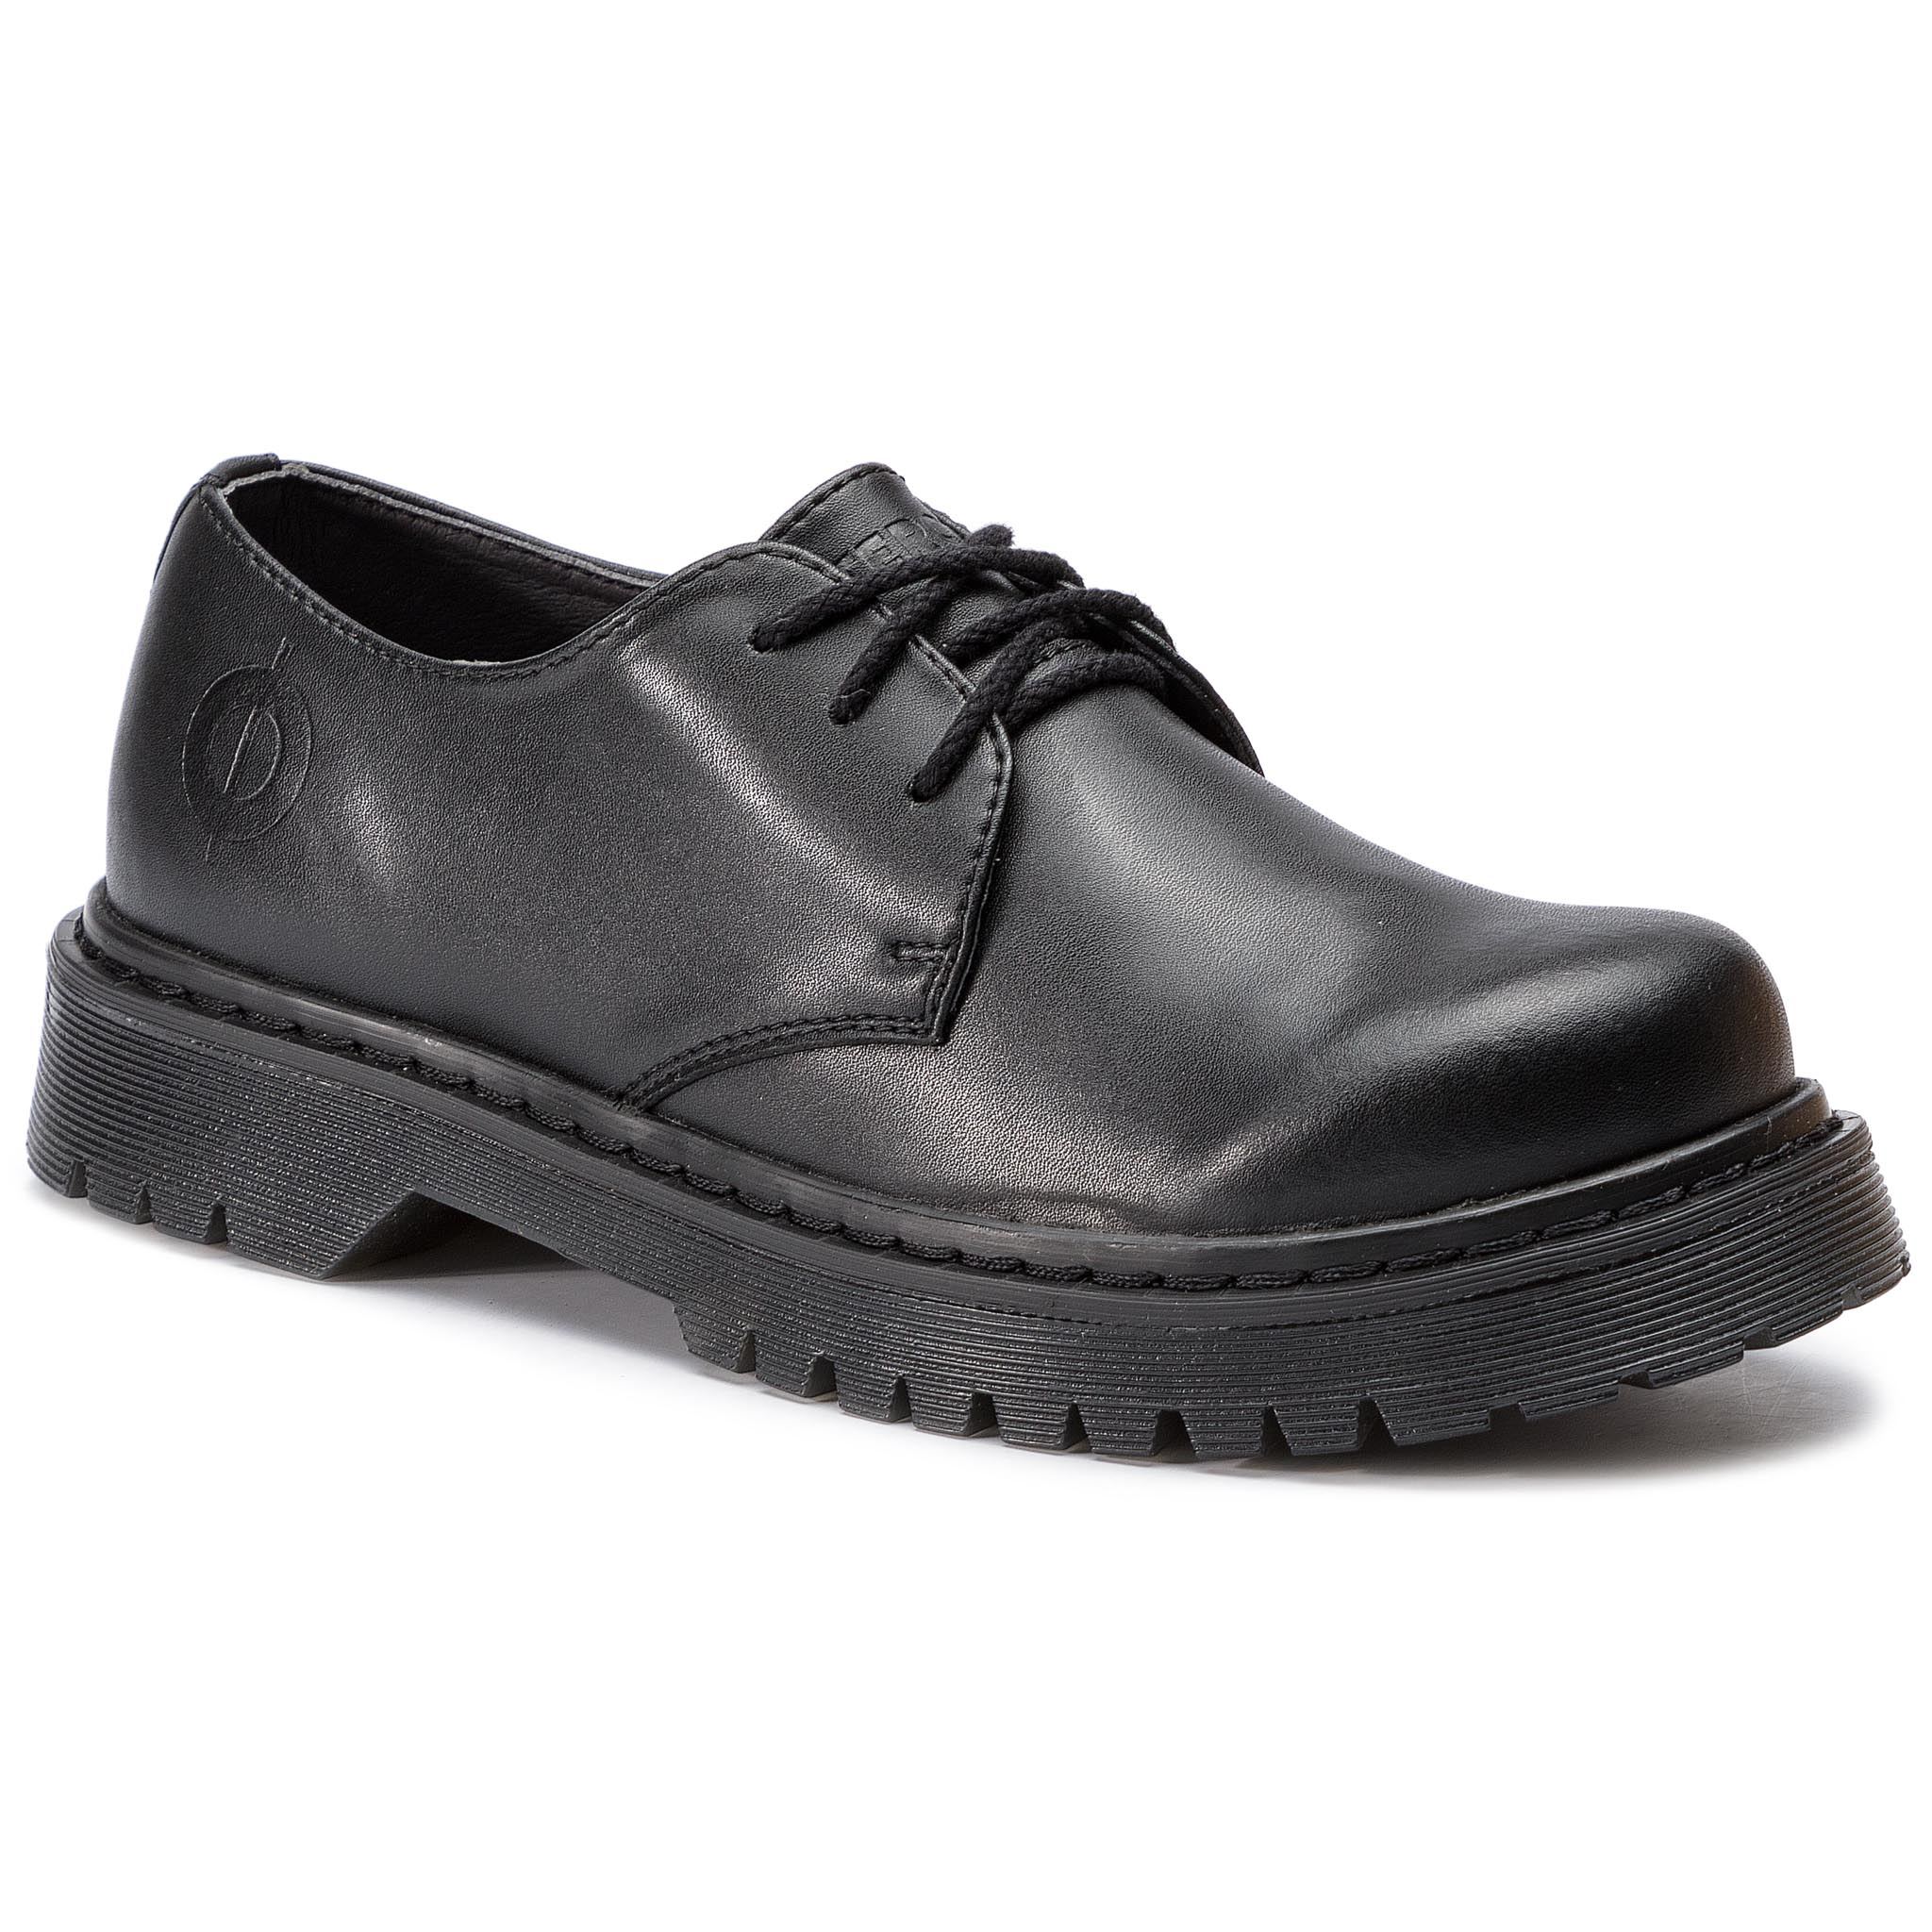 Image of Halbschuhe ALTERCORE - 650D Vegan Black